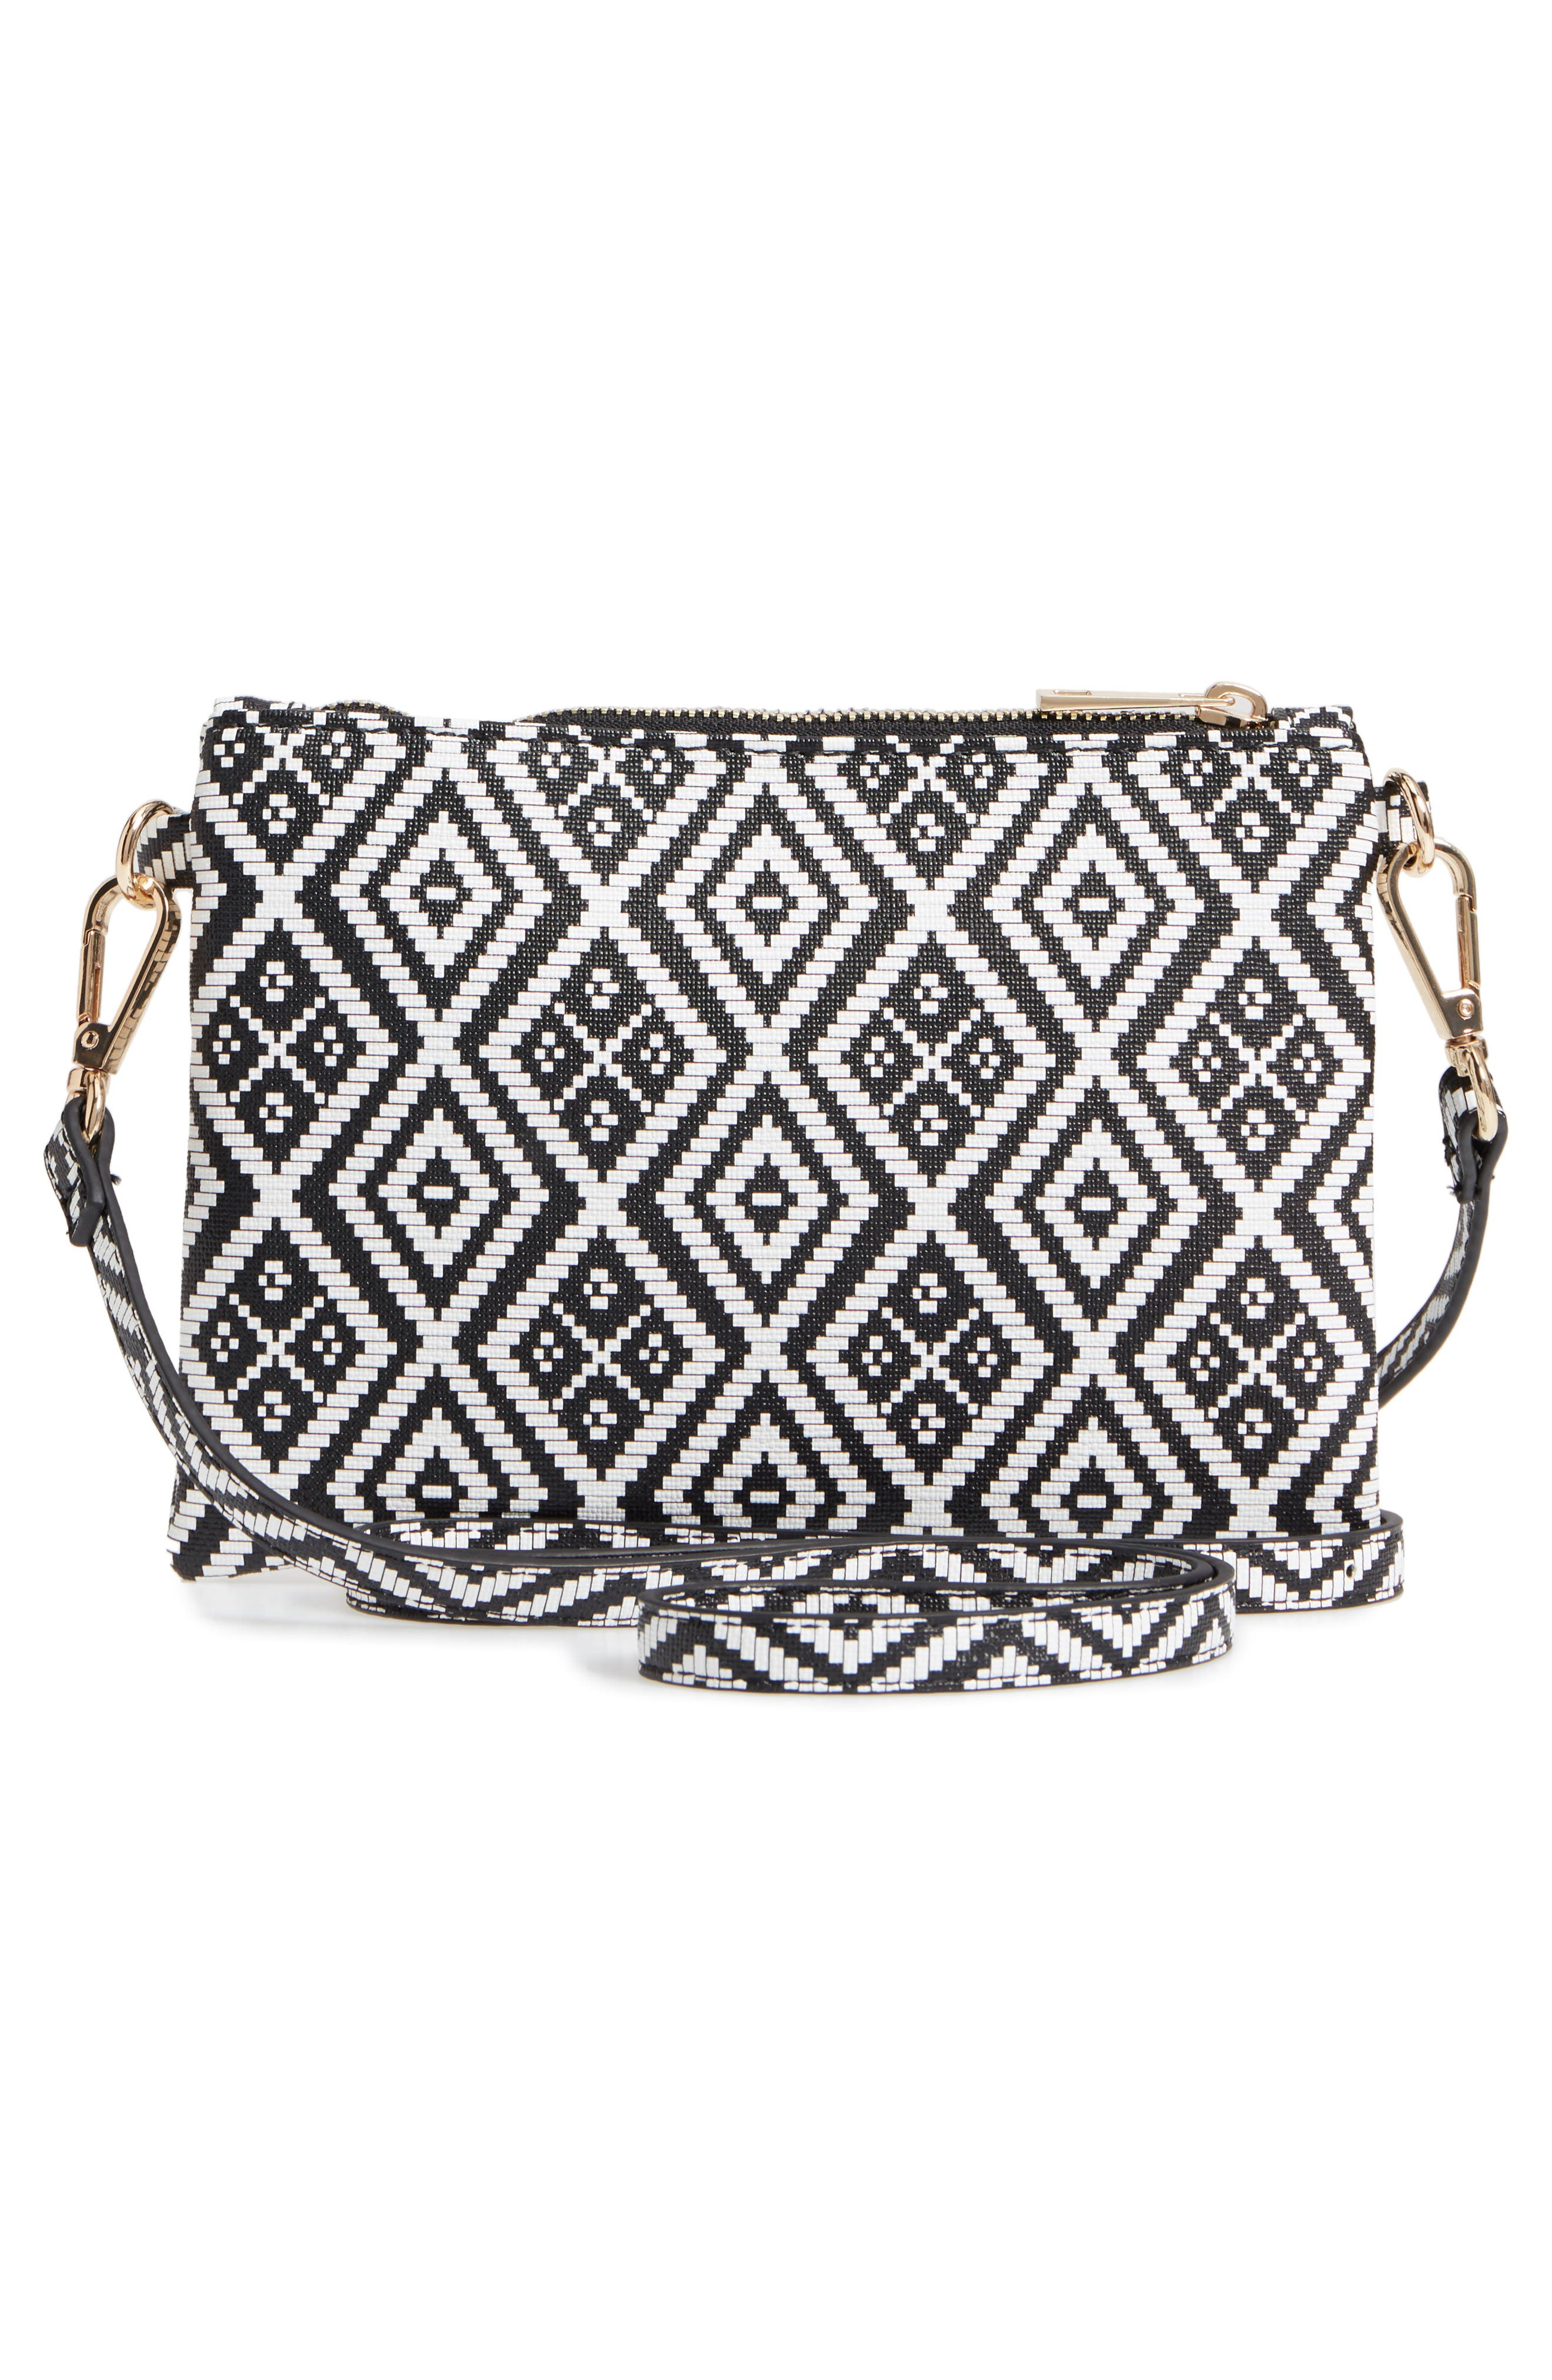 Weave Pattern Convertible Crossbody Wristlet,                             Alternate thumbnail 4, color,                             001